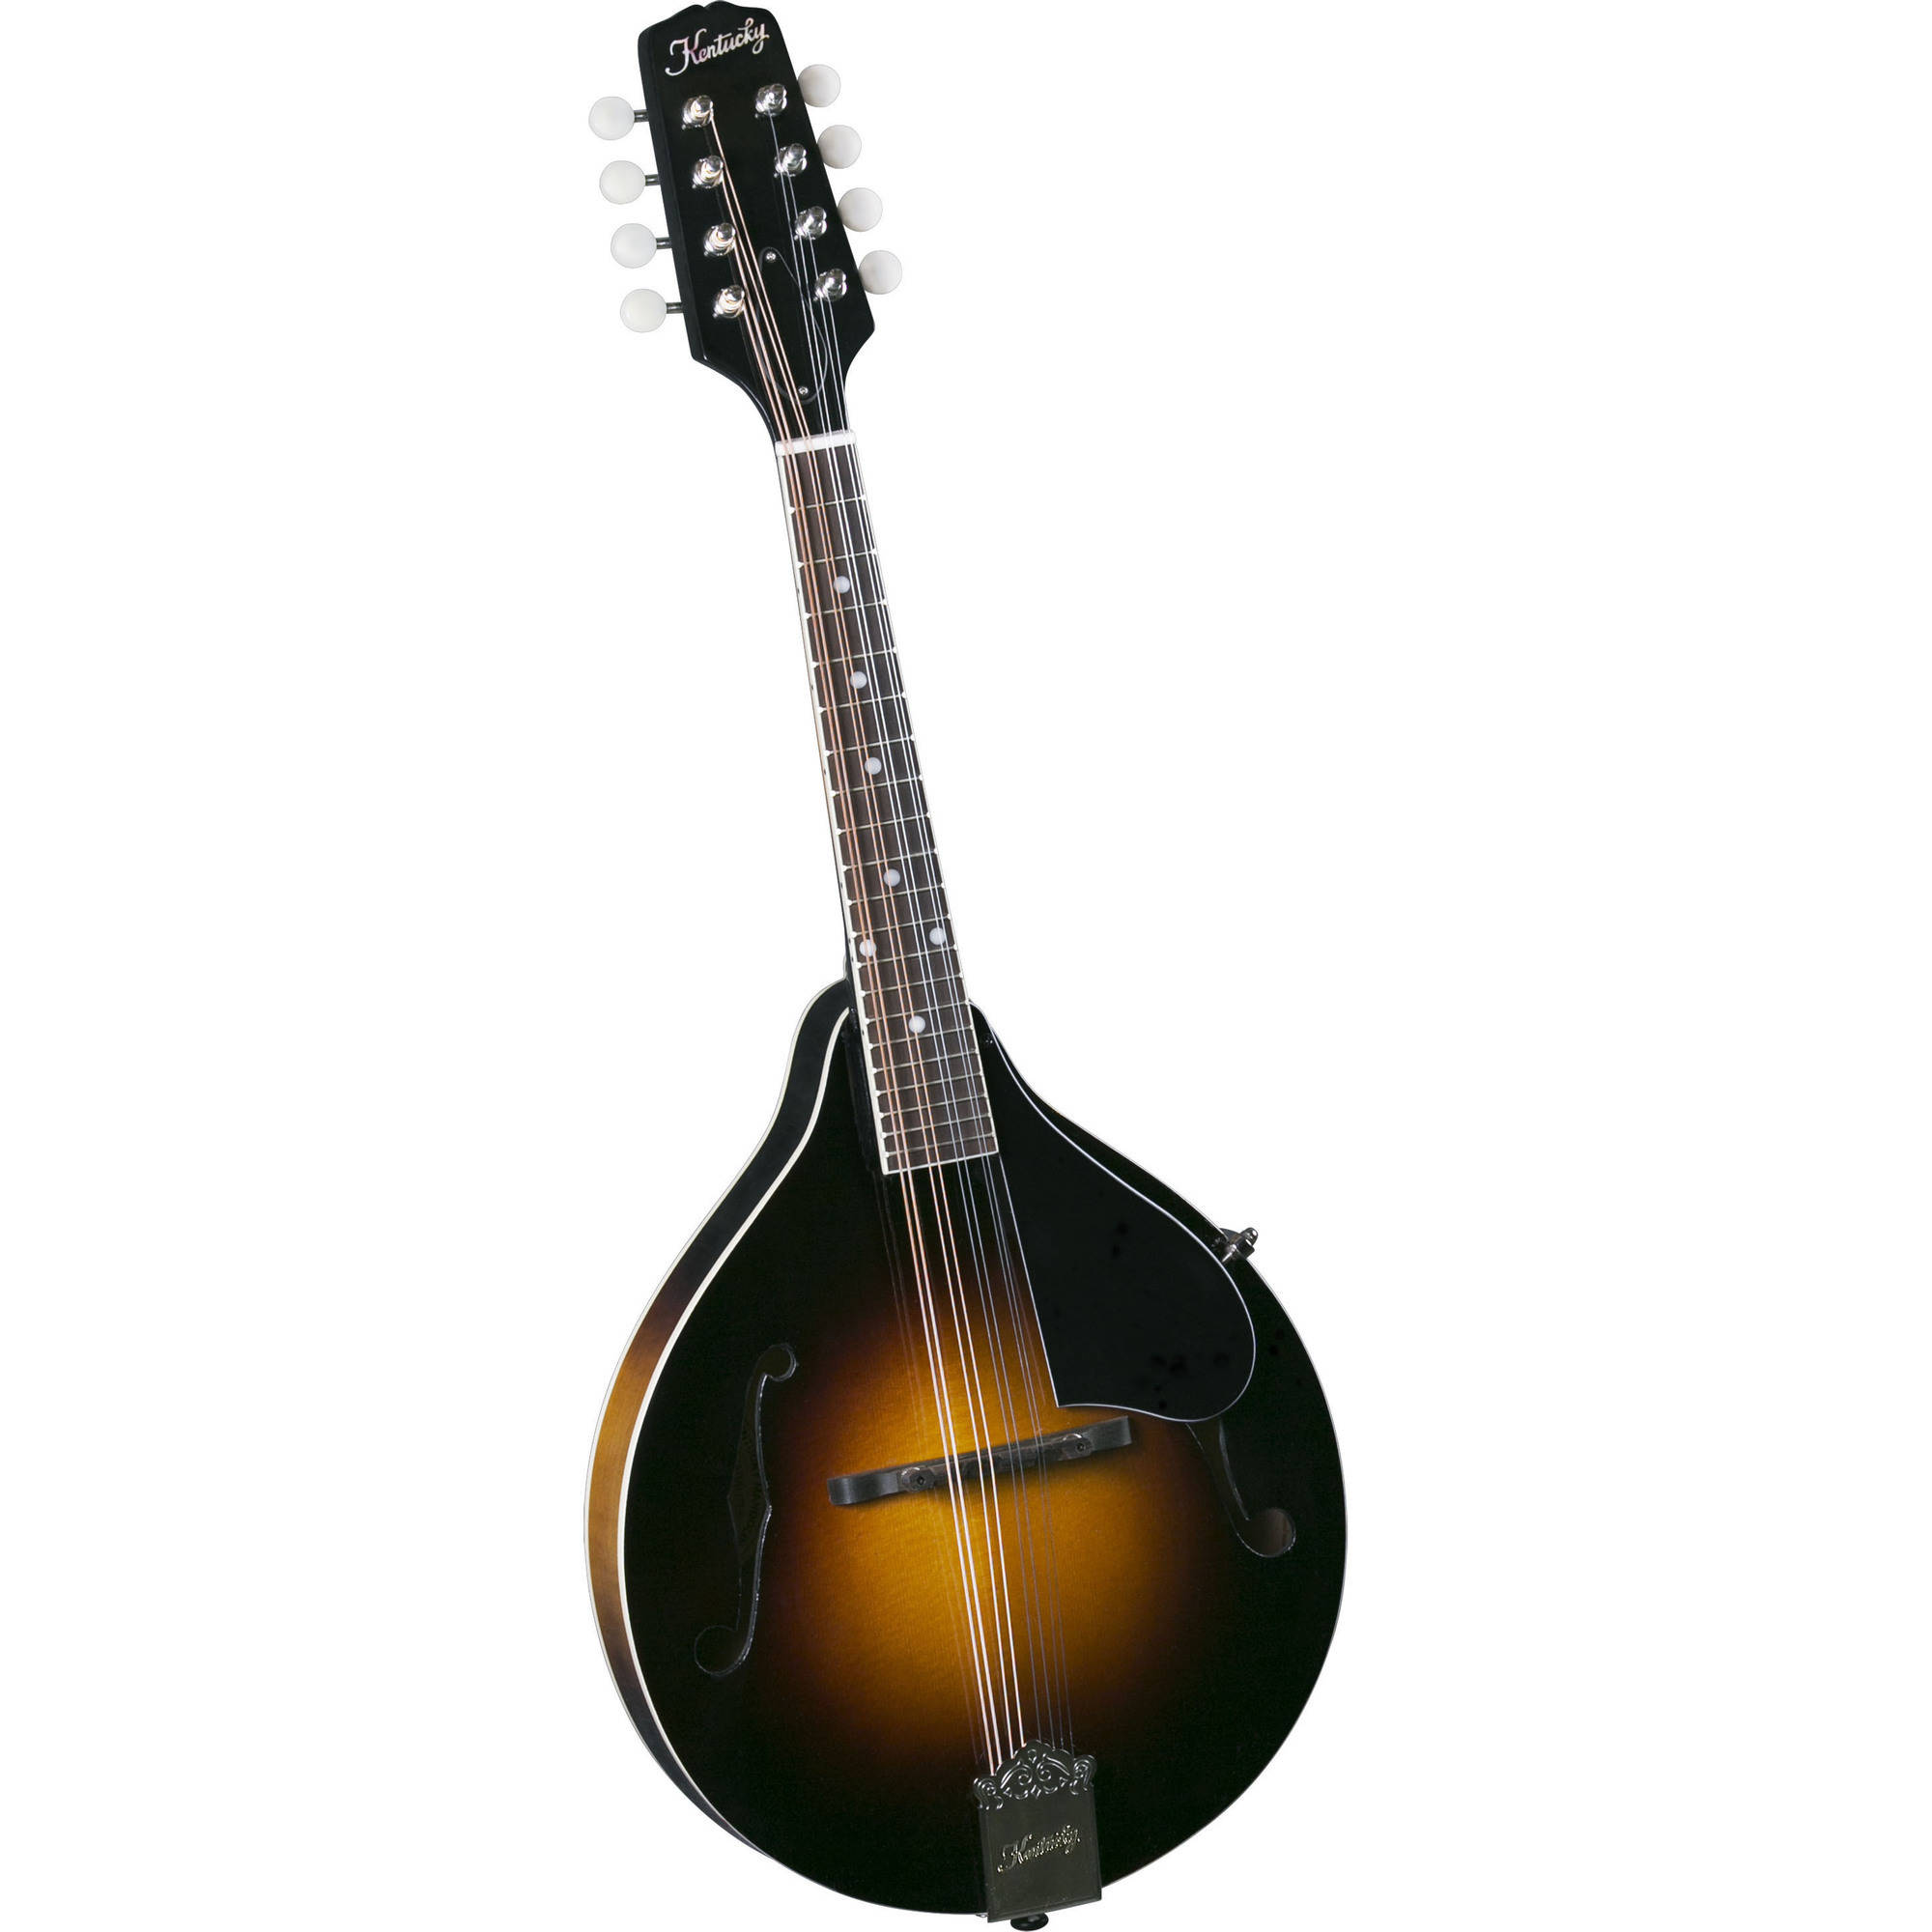 Kentucky KM-150 Standard A-Model Mandolin, Sunburst by Saga Musical Instruments